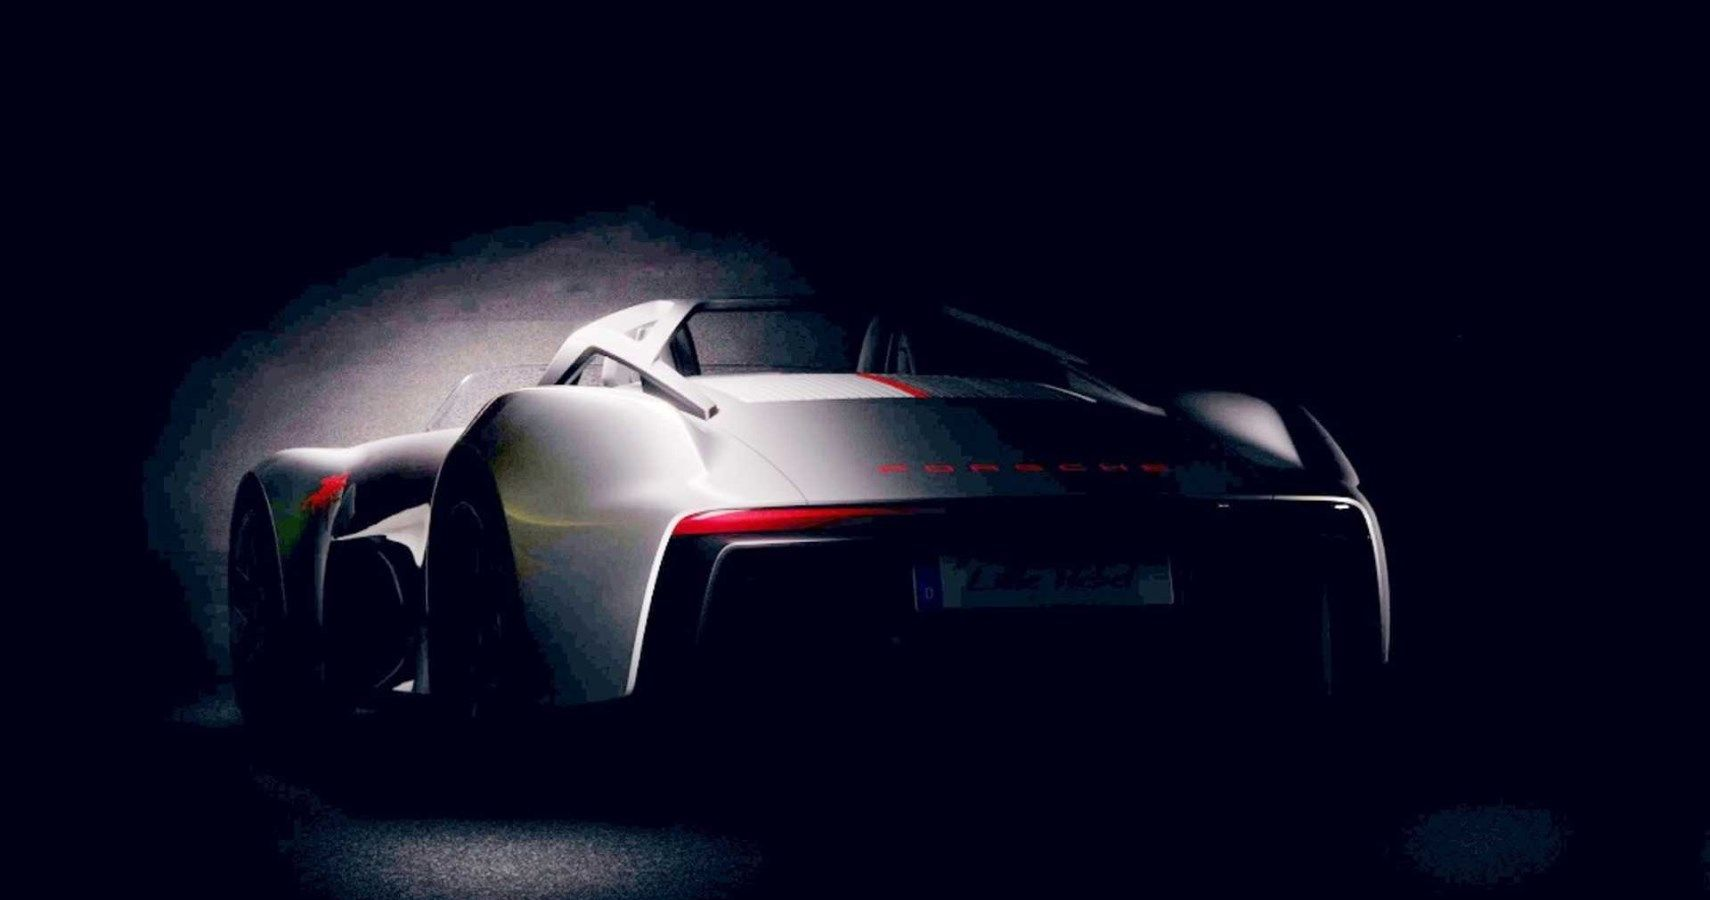 Porsche Teases Never Before Seen Designs Of Unreleased Sports Cars